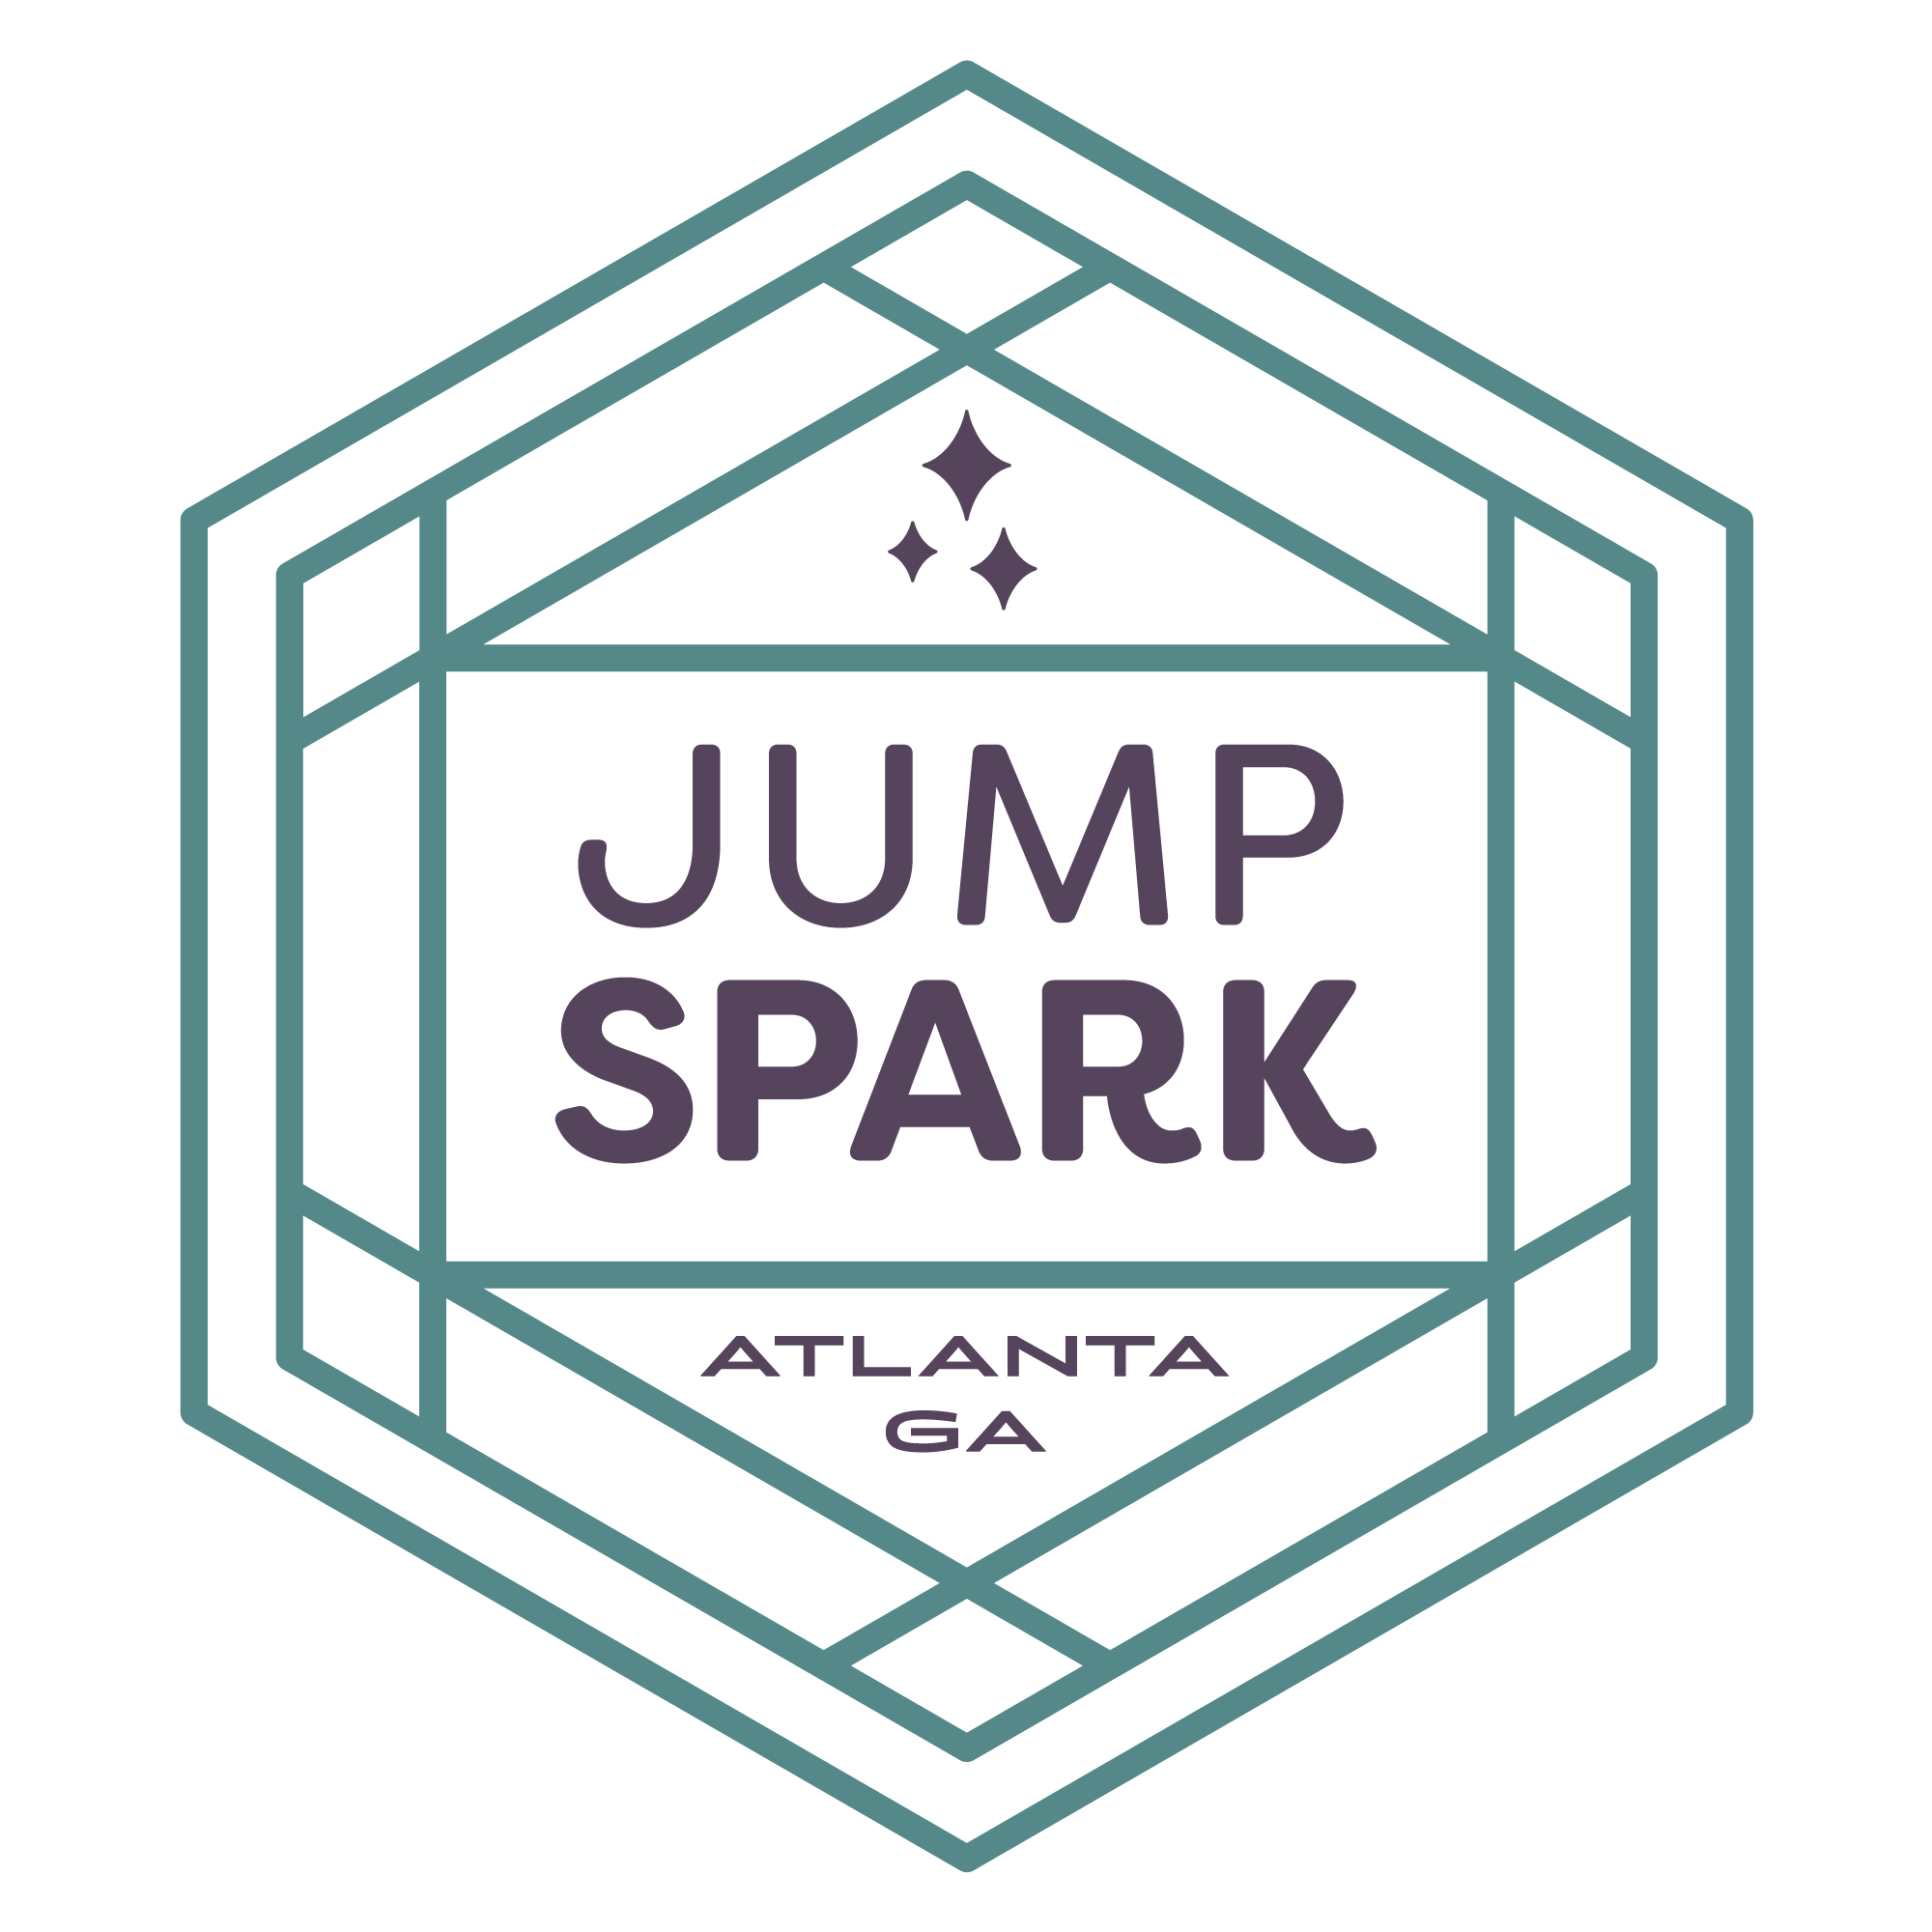 Jumpspark ATL    Digital Marketing Strategy, Content Creation, Social Media Marketing    View Project